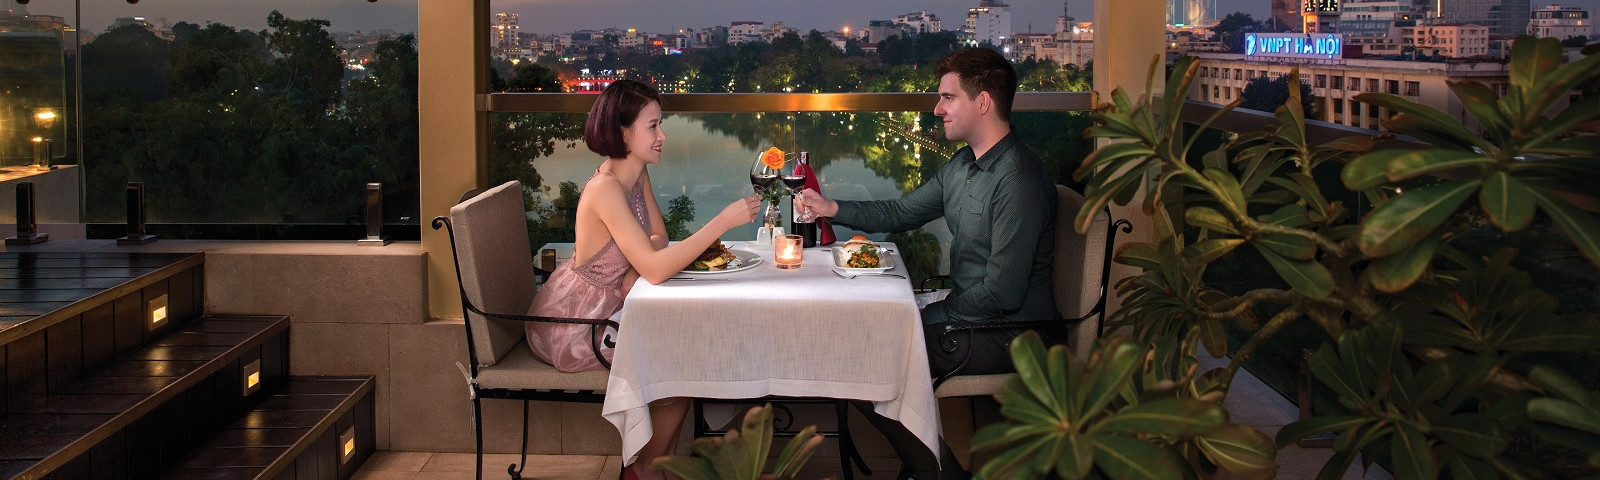 Restaurant at Silk Path Hotel in Hanoi, Vietnam